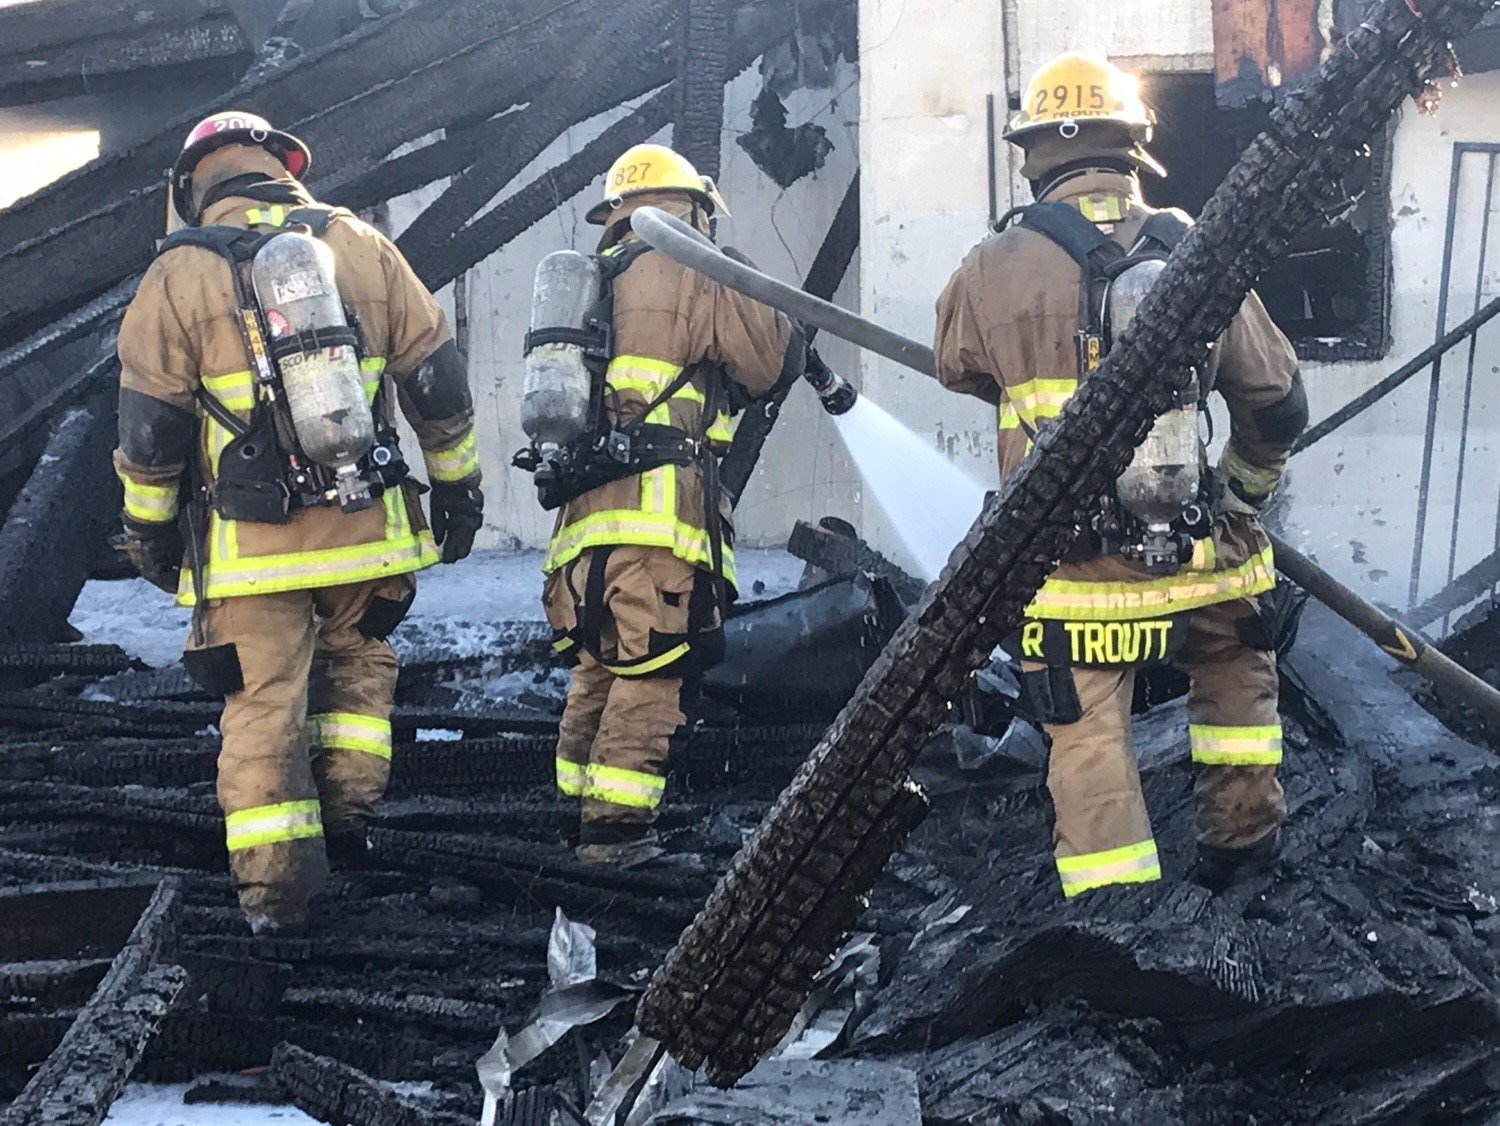 Fire fighters pick through rubble of a house fire Friday. (16 June 2017) [Source: Phoenix Fire Department]